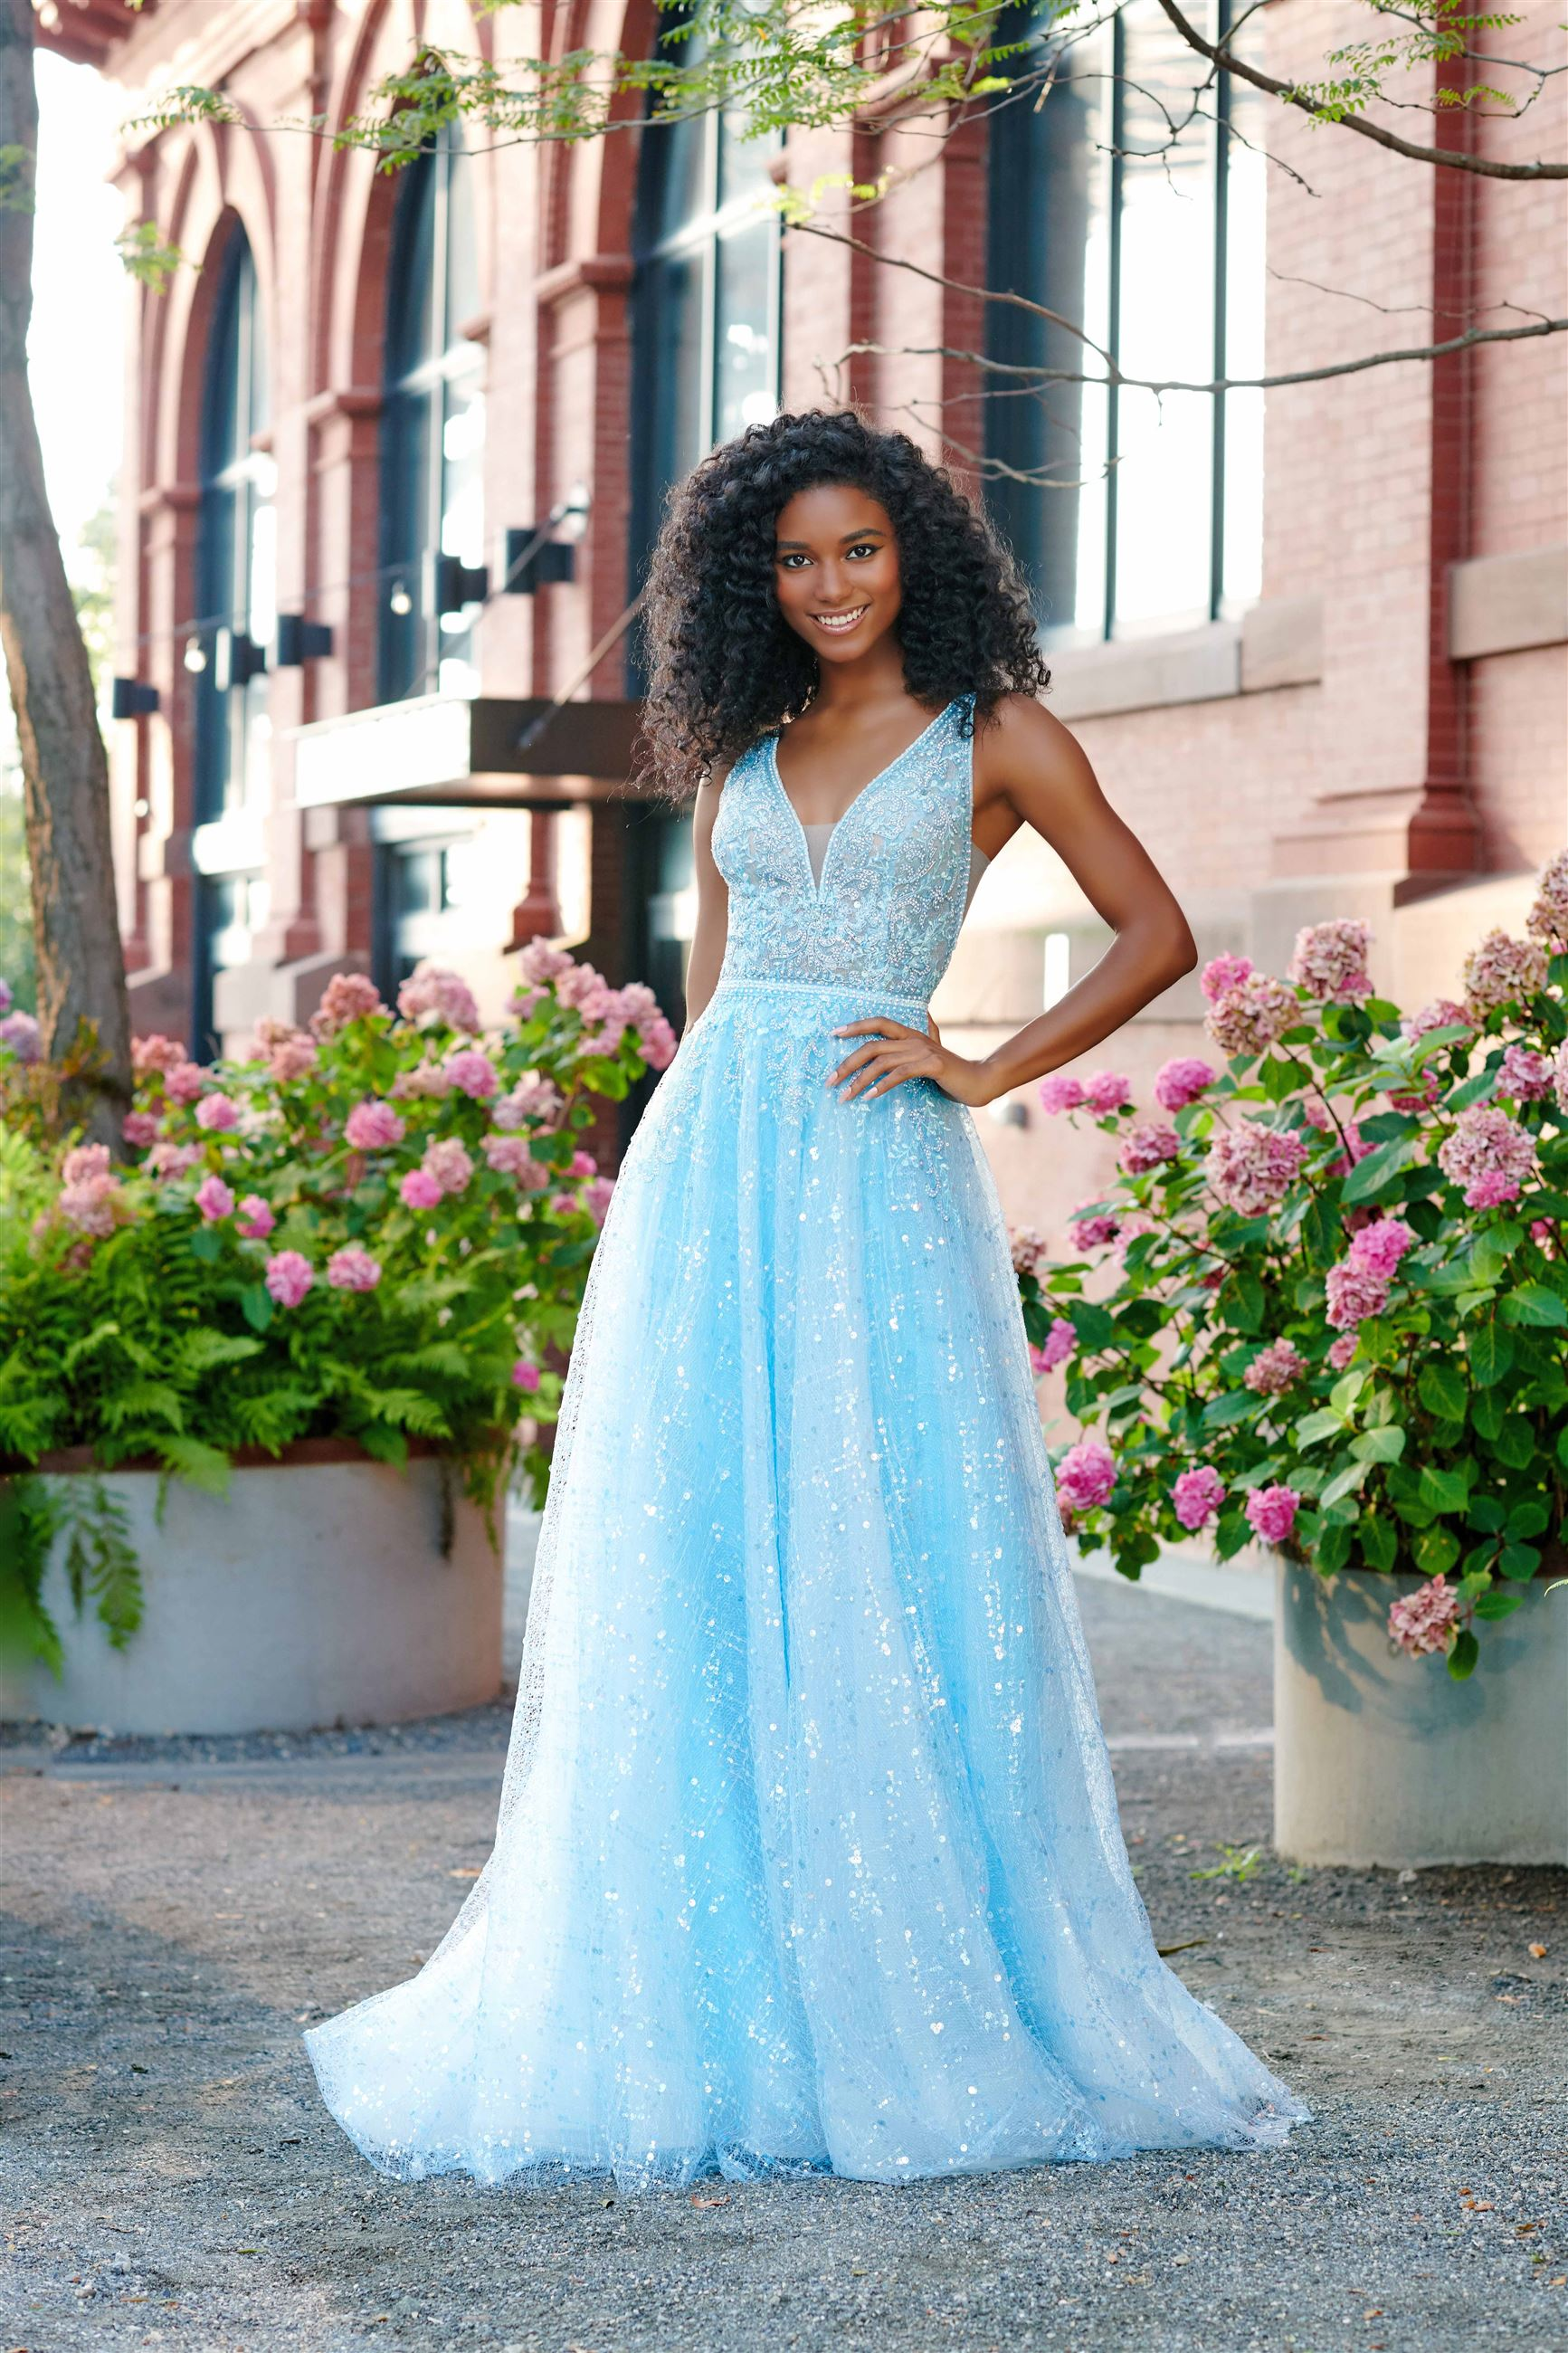 Girl wearing sparkly blue prom dress by Ellie Wilde